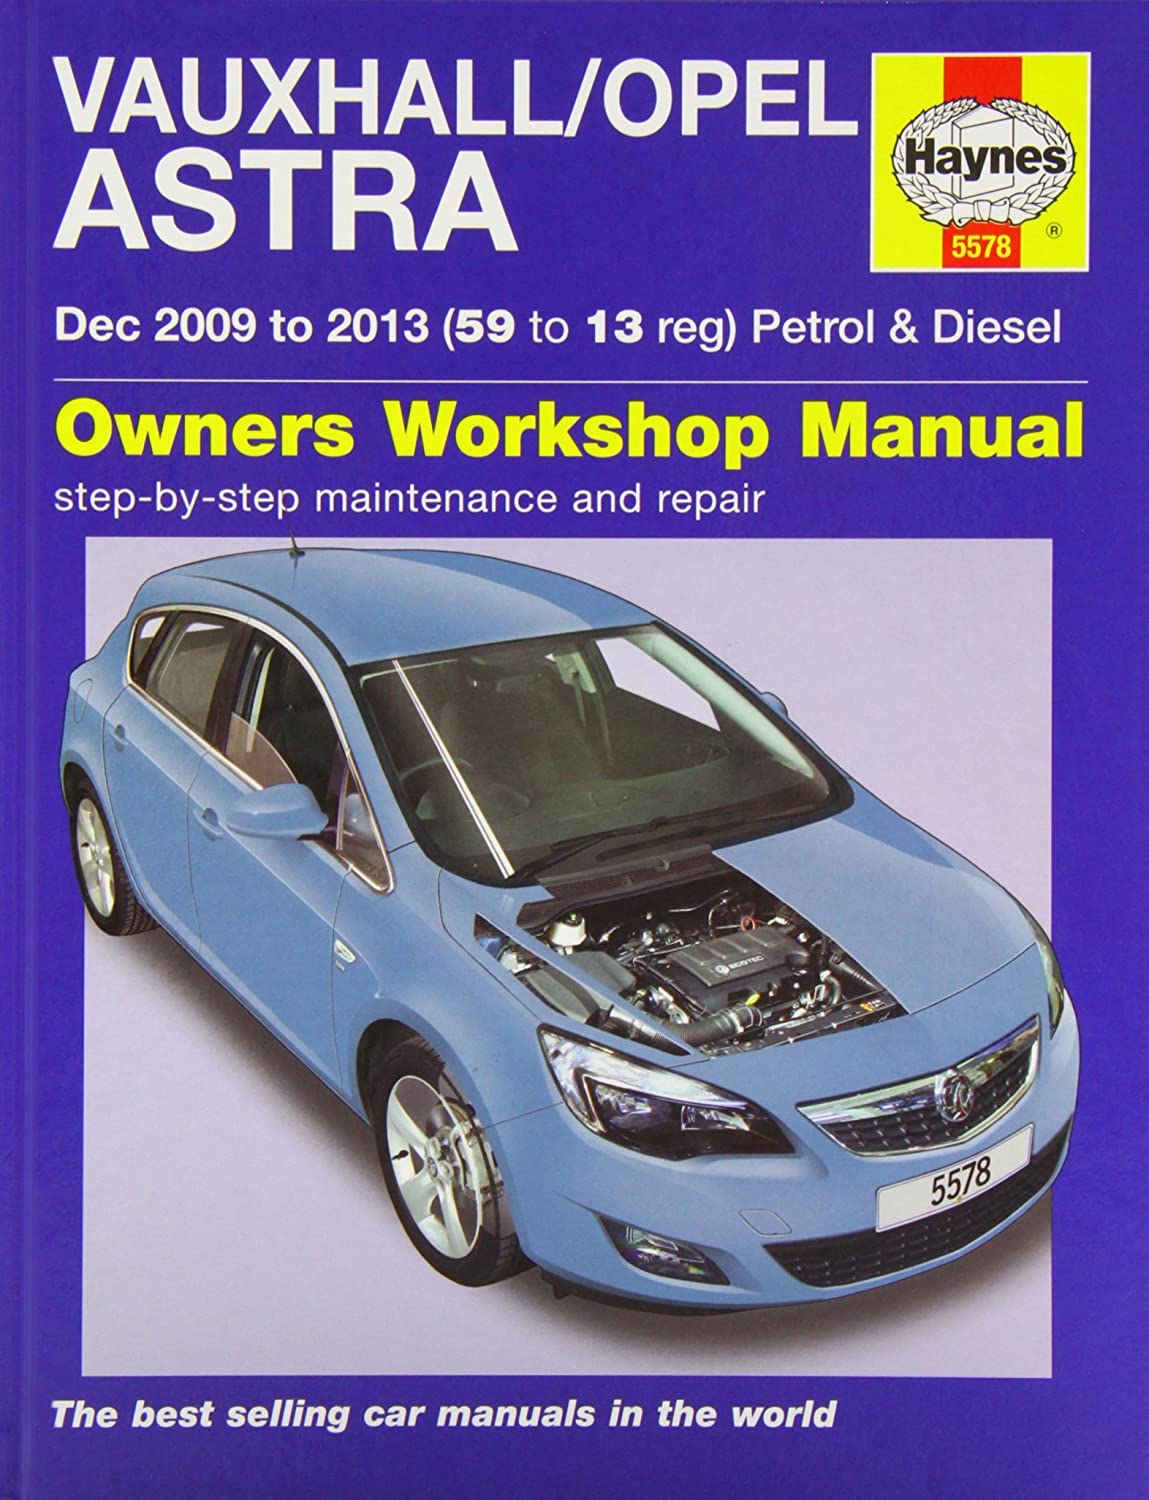 opel astra ts service manual how to and user guide instructions u2022 rh taxibermuda co Manual Book Parts Manual